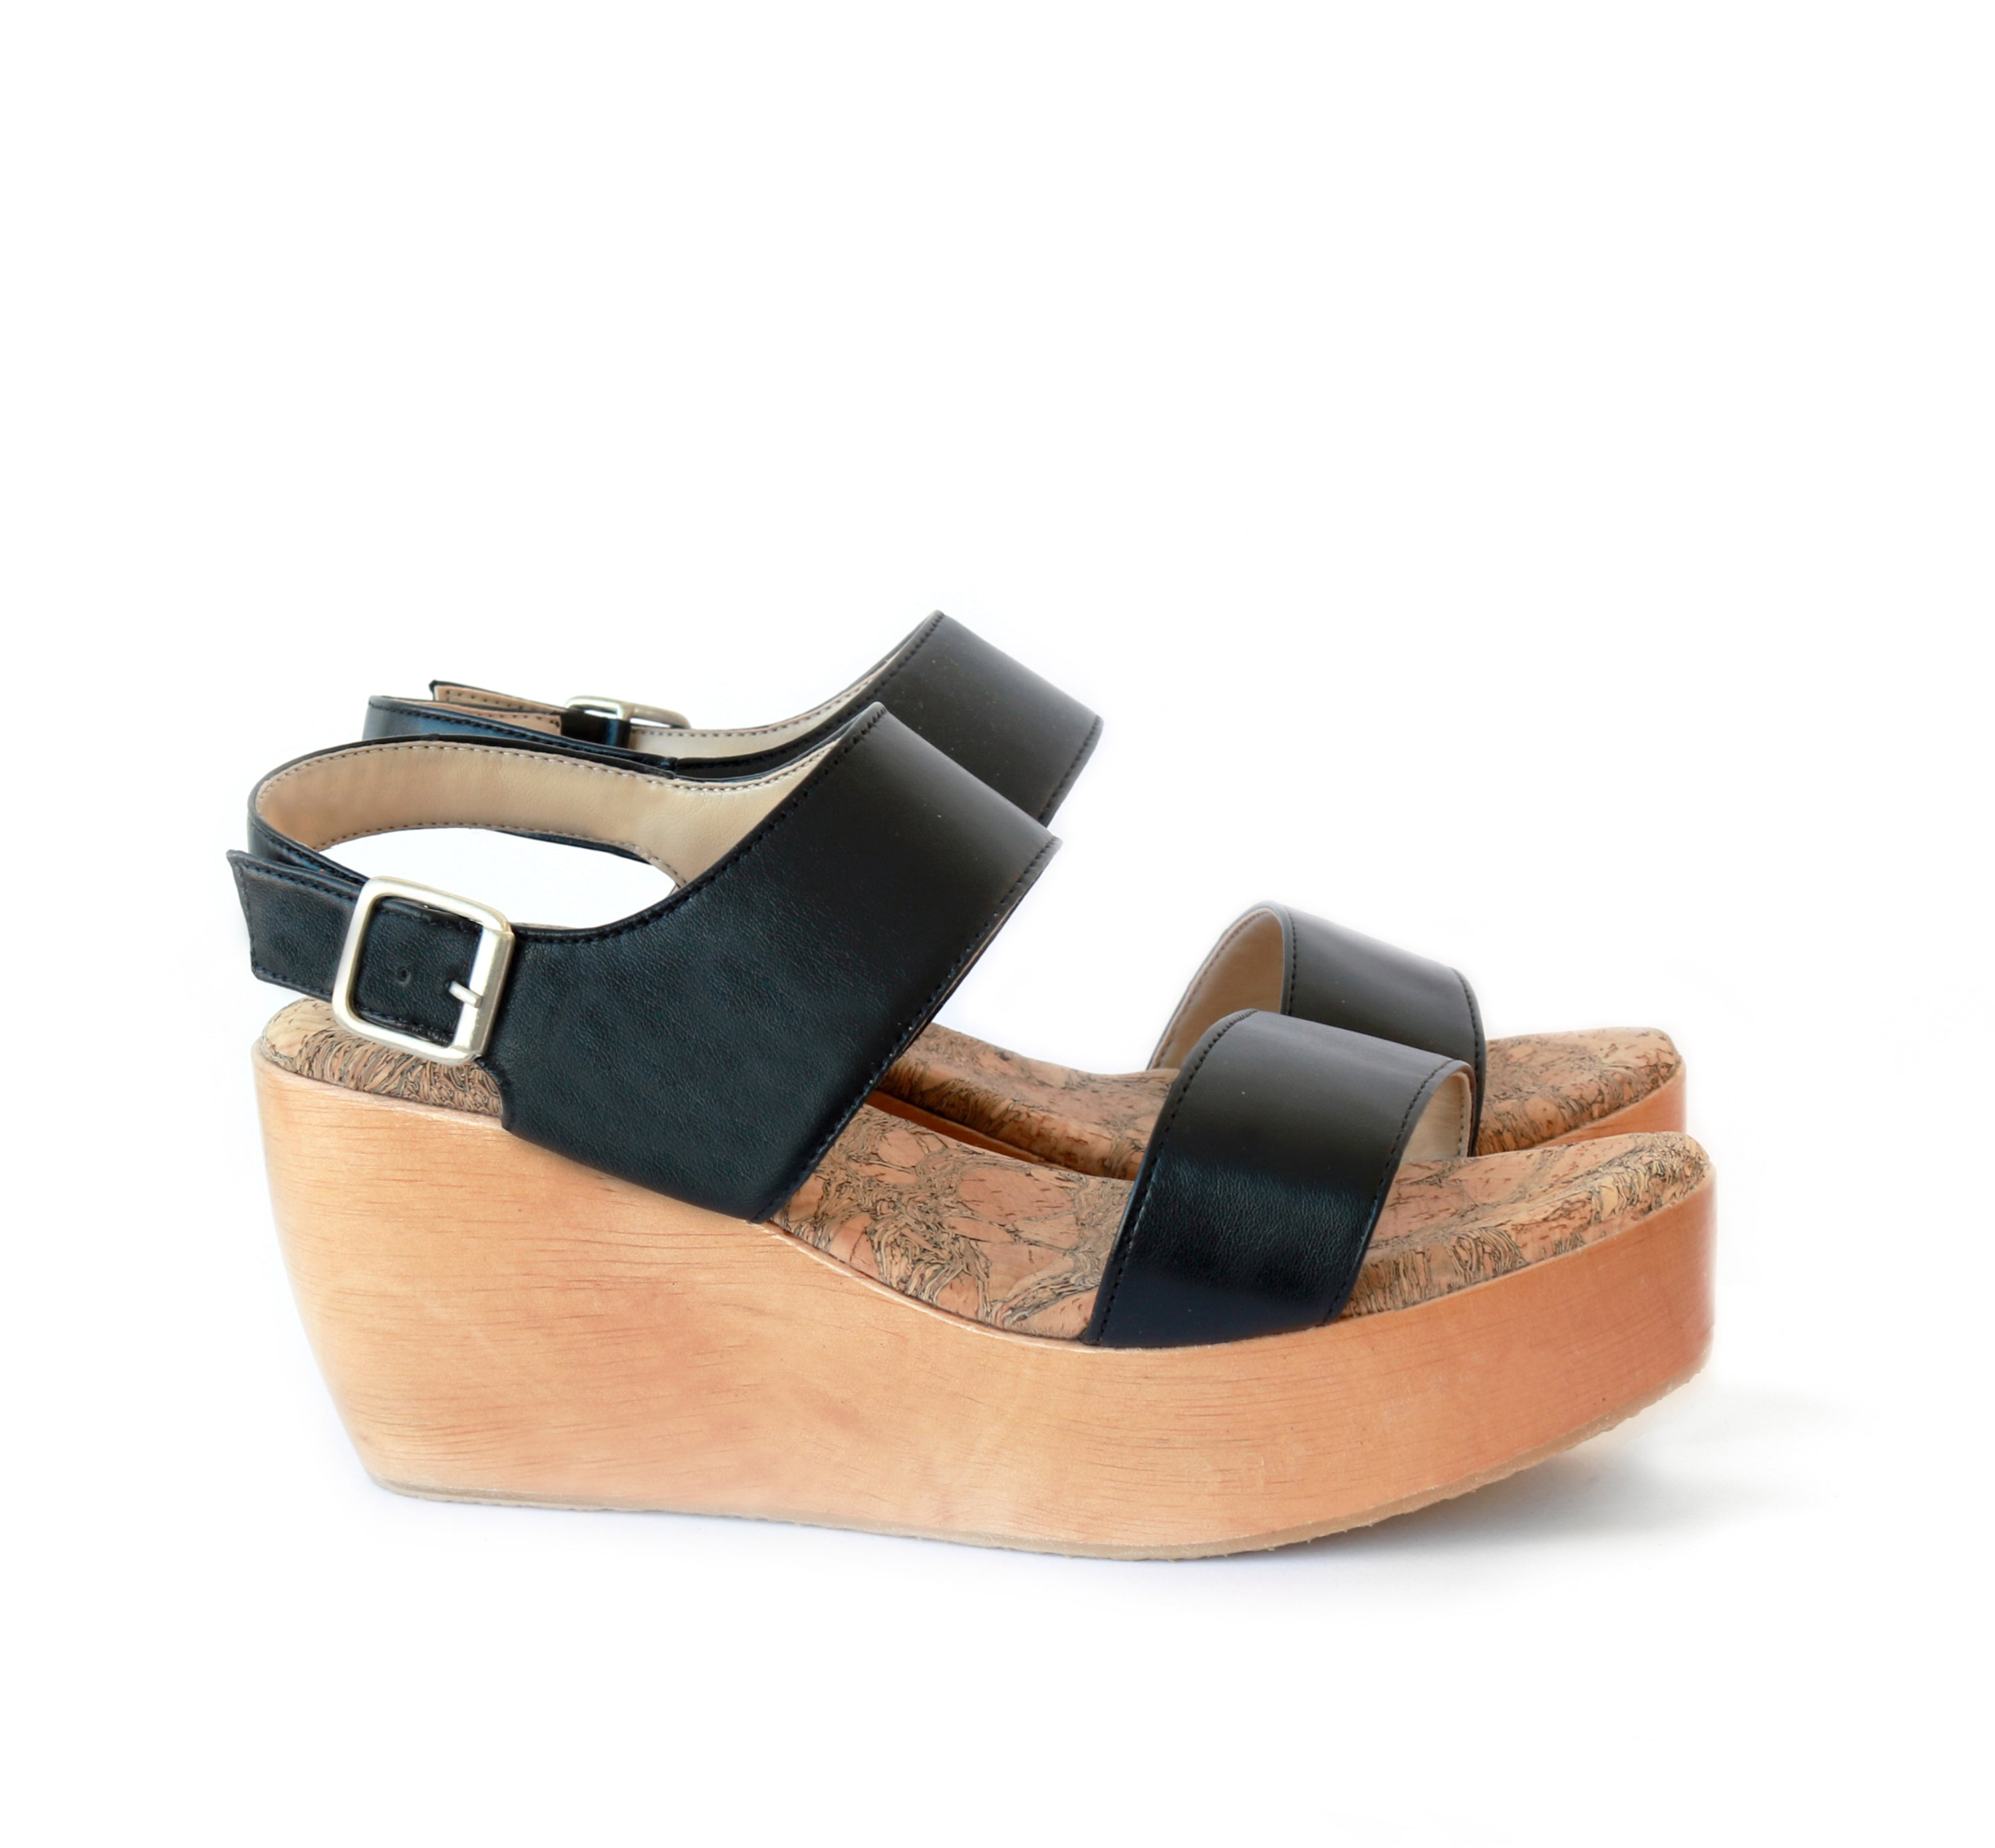 Sydney Brown Vegan, Animal-Free, Non-Leather, Ethical Classic Platform Sandals in Black Faux-Nappa, Summer Spring